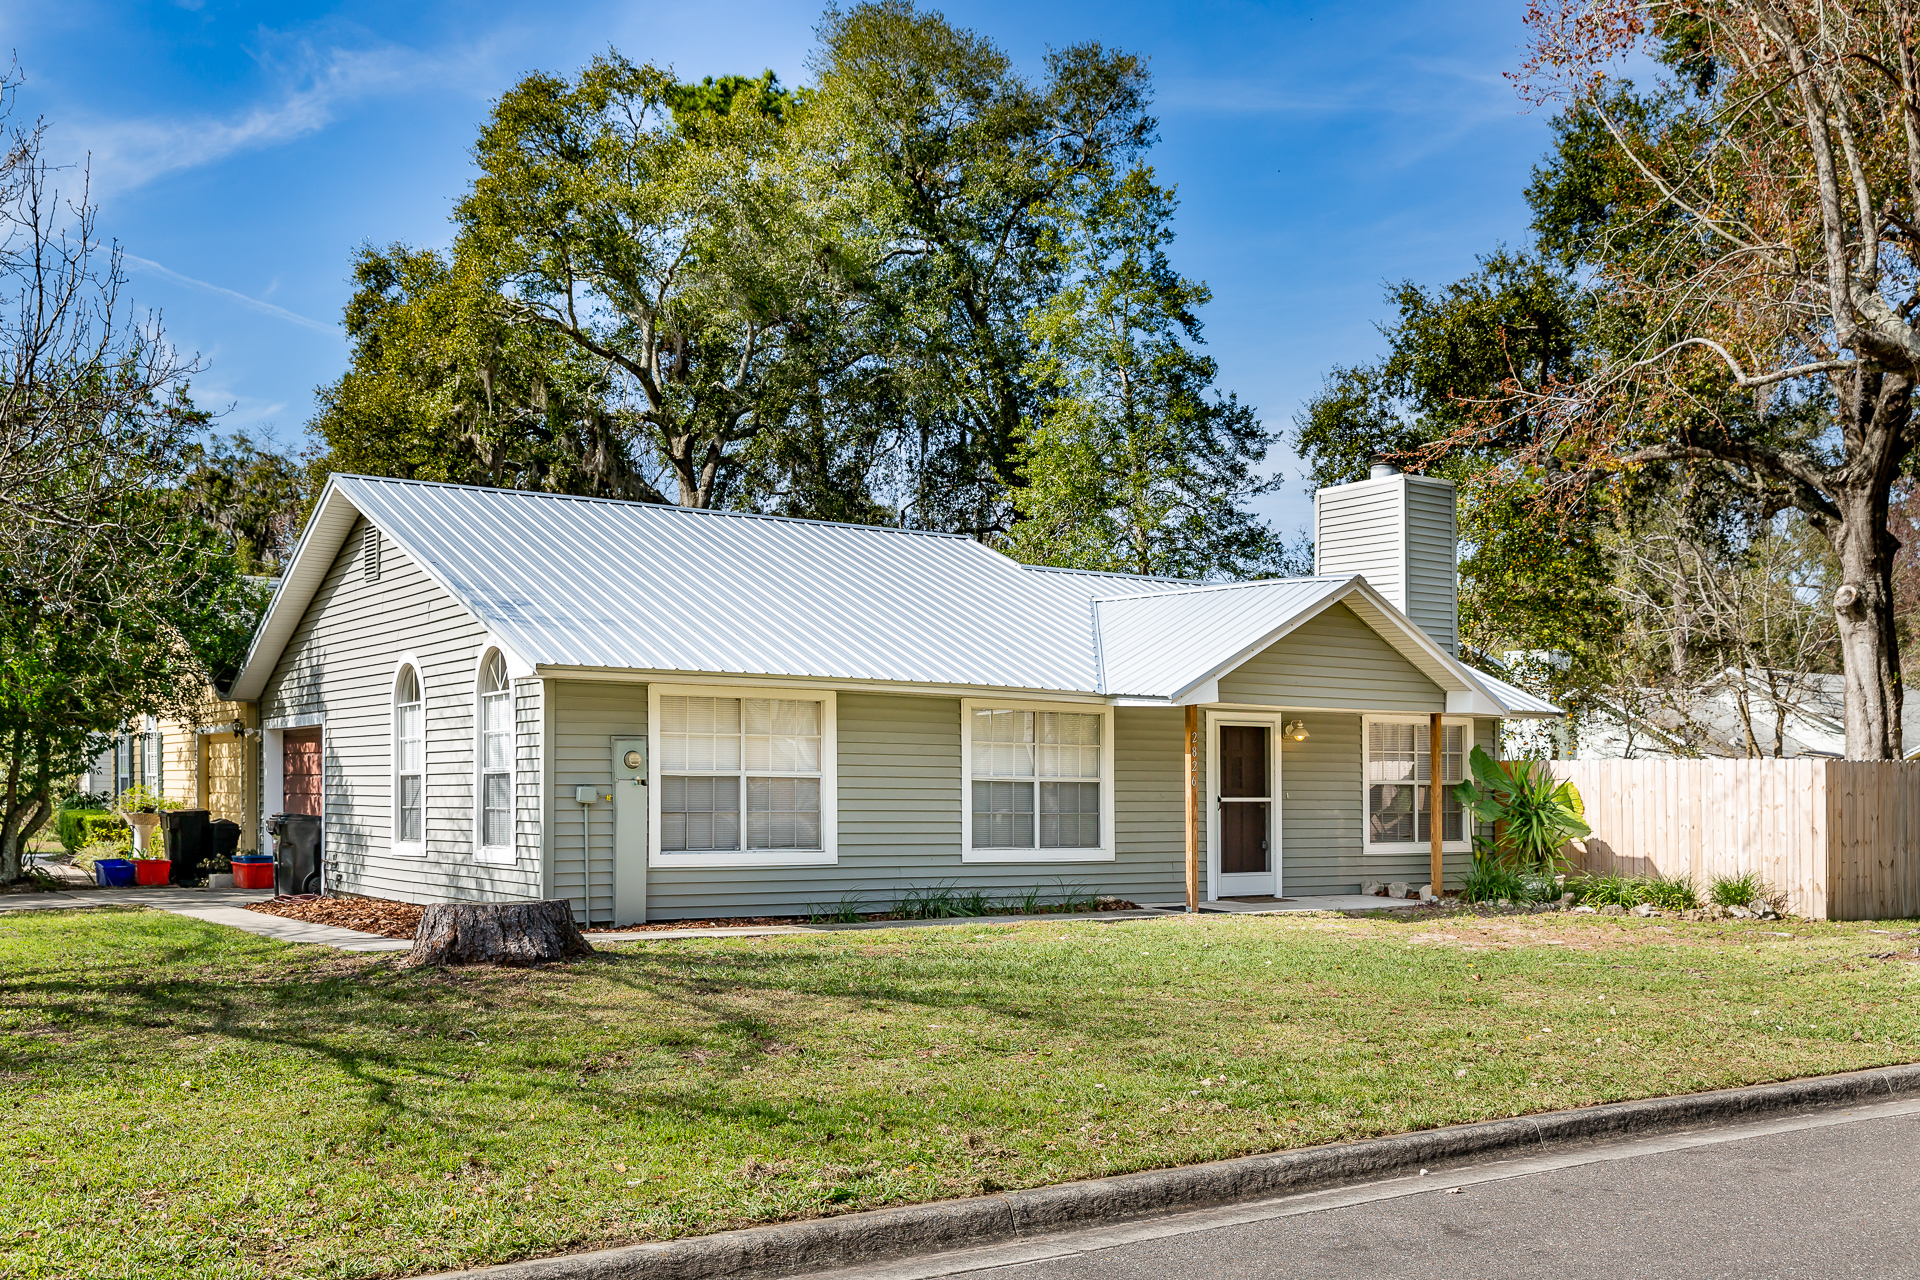 2826 SW 39th Avenue, Gainesville, Florida 32608 - Gaineville fl home for rent